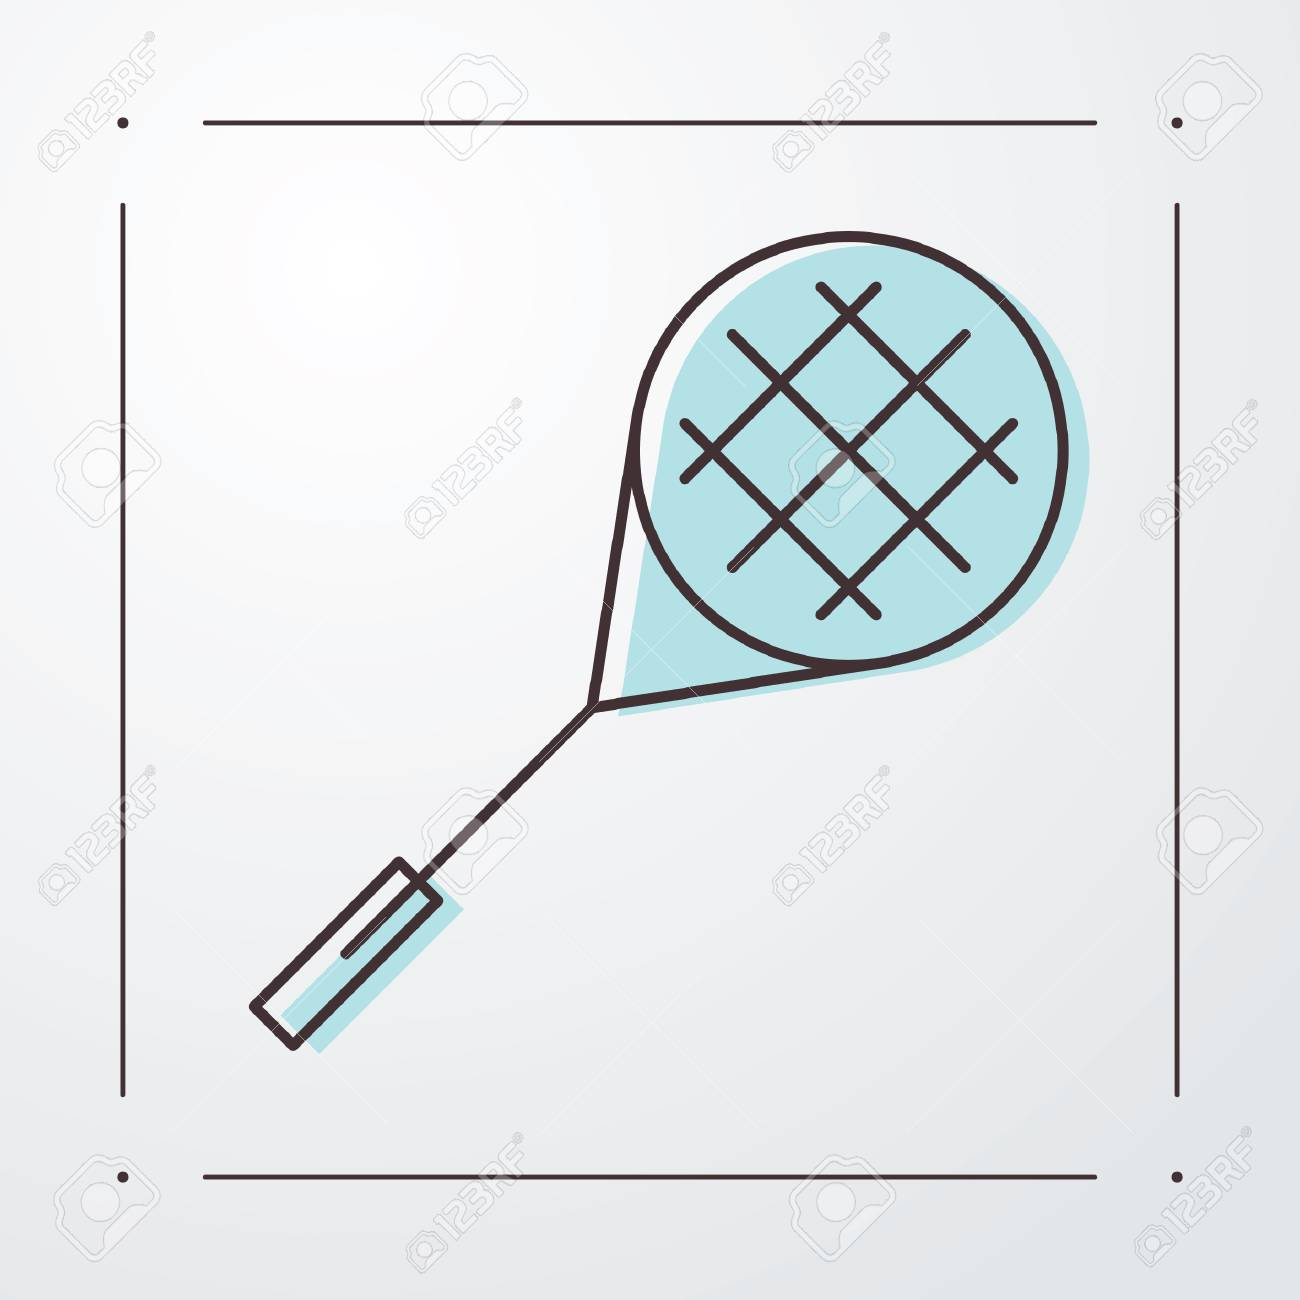 Astonishing Tennis Racket Royalty Free Cliparts Vectors And Stock Illustration Wiring Cloud Intapioscosaoduqqnet